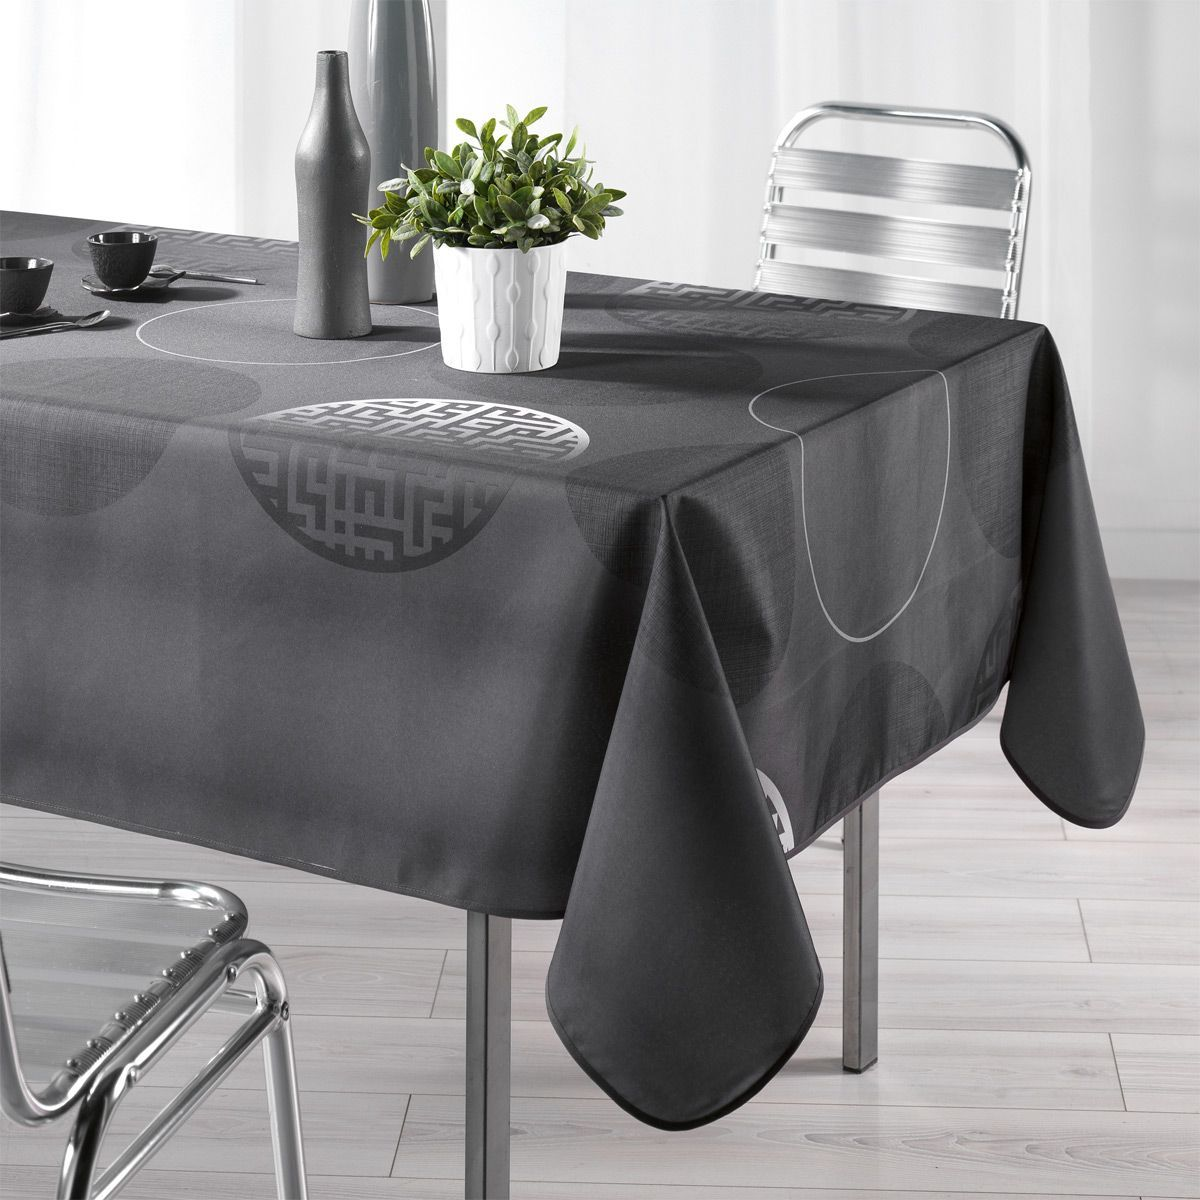 Nappe rectangulaire l240 cm kosmo anthracite nappe de table eminza Linge de table luxe